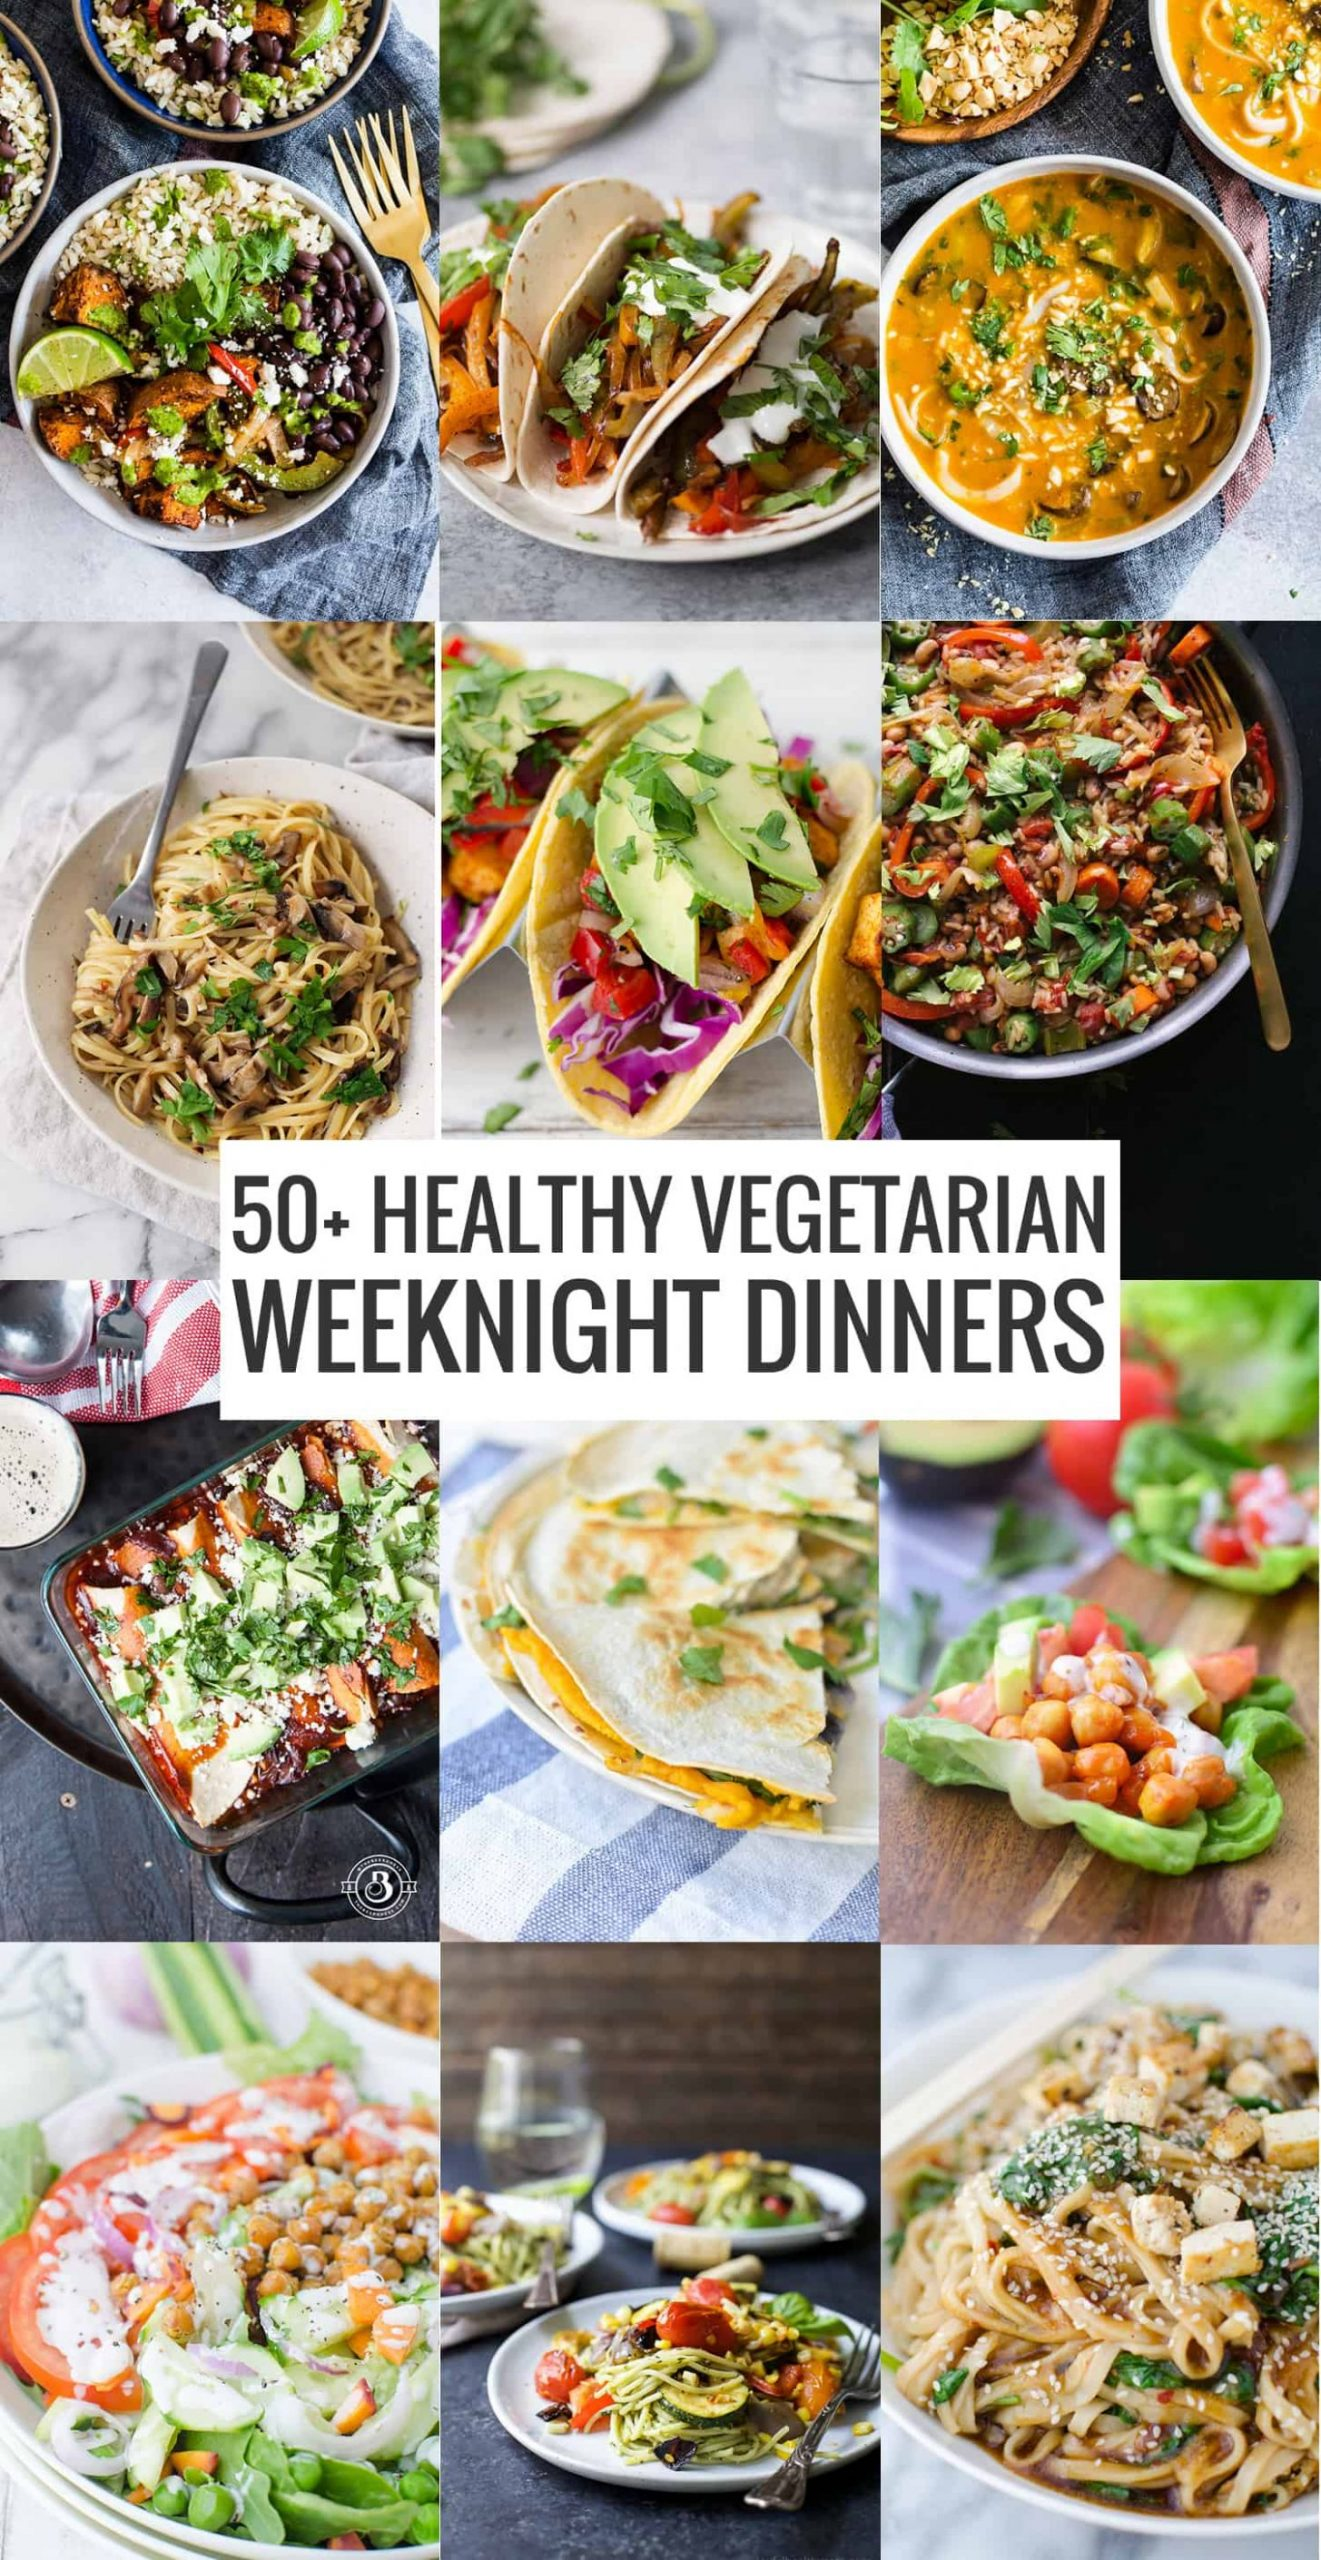 8+ Healthy Vegetarian Meals - Delish Knowledge - Vegetable Recipes Quick